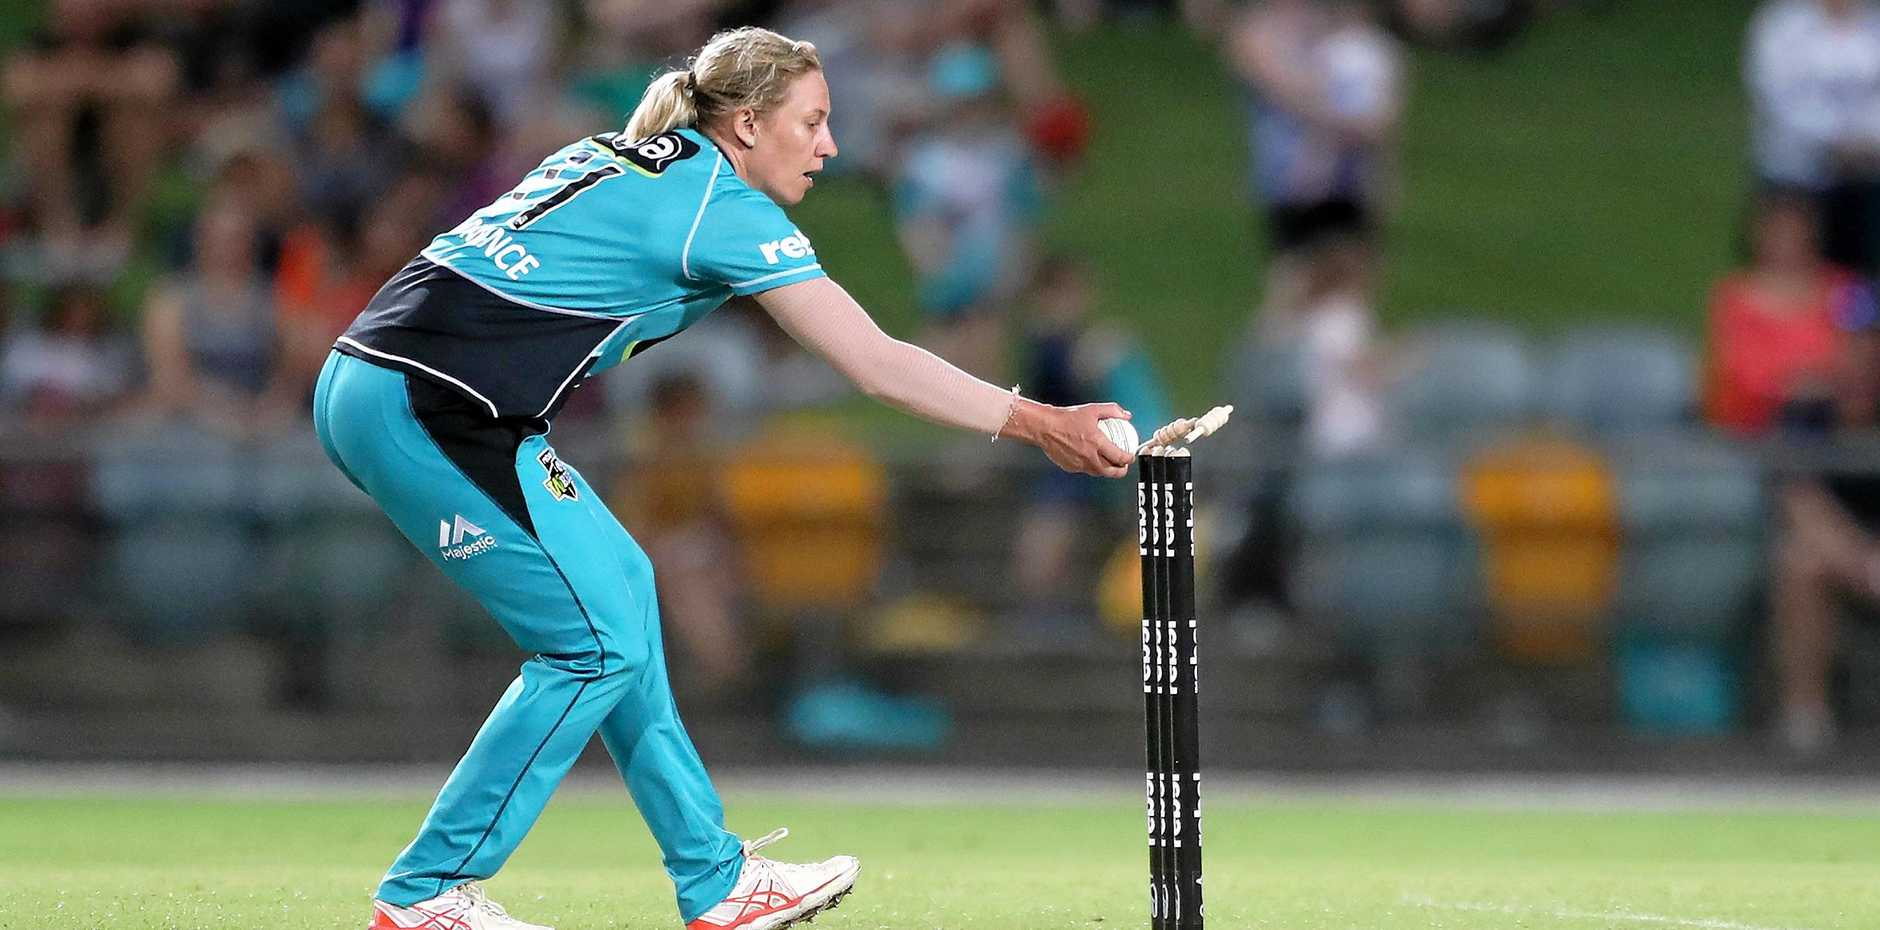 TOP FORM: Delissa Kimmince of the Heat runs out Sydney Thunder's Rachel Trenaman off her own bowling during the Women's Big Bash League (WBBL) match in Cairns. The same teams meet in a semi-final today.